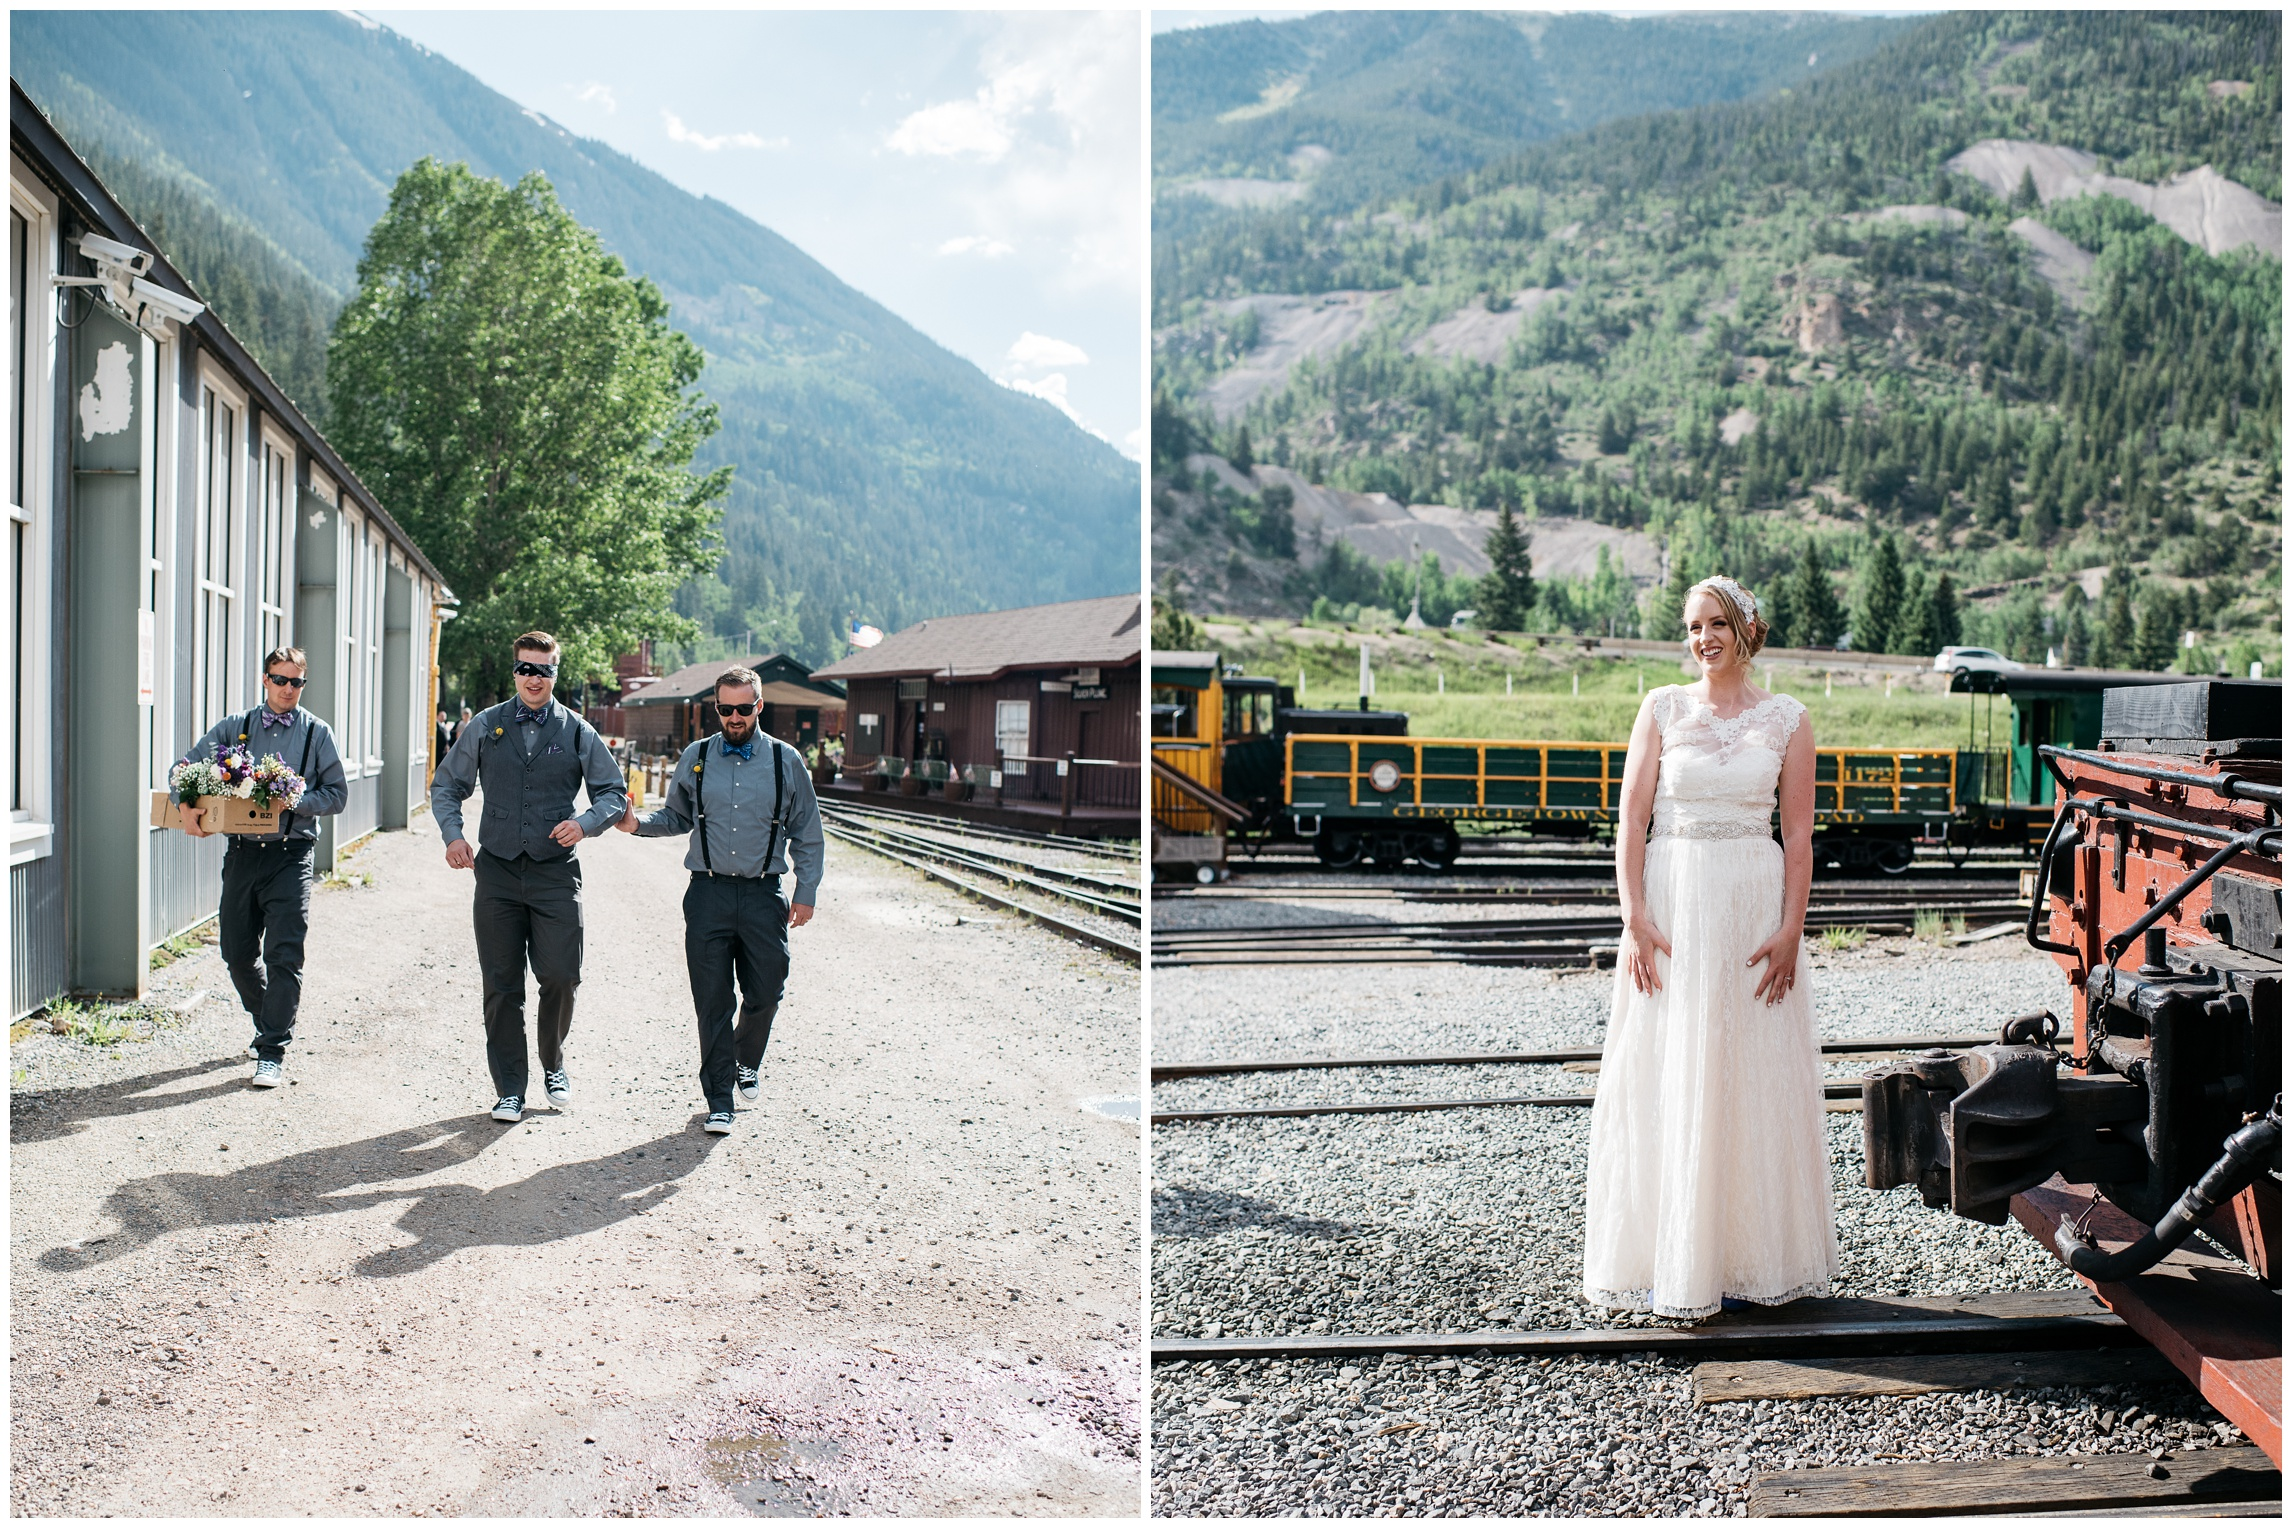 Groomsmen prepare for the wedding while a bride poses in the warm Goergetown, Colorado light. Wedding photography by Sonja Salzburg of Sonja K Photography.